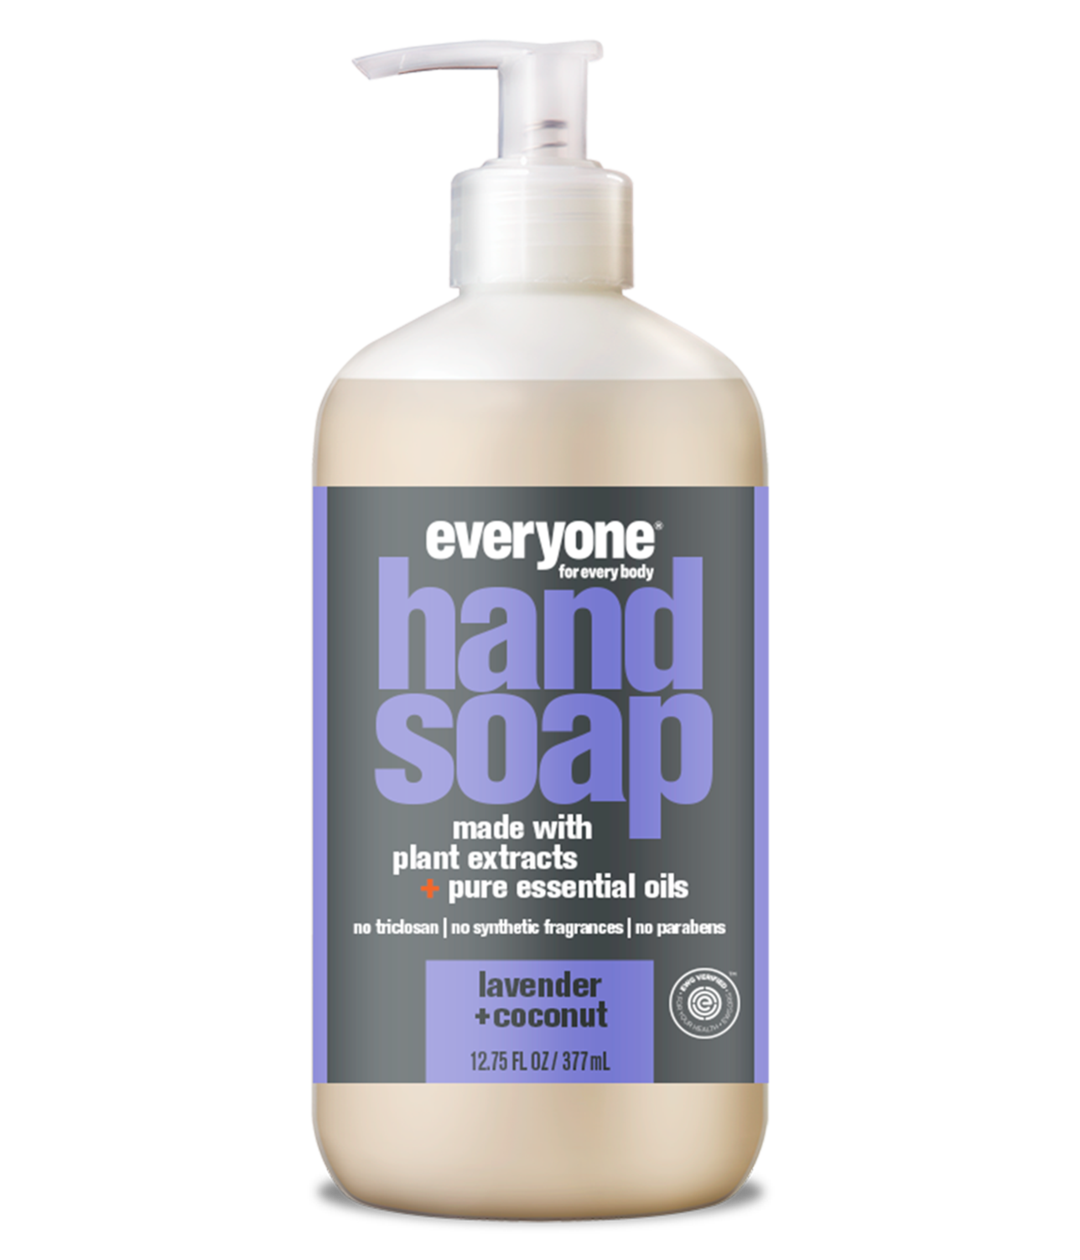 everyone hand soap, lavender + coconut, 12.75 fl oz.